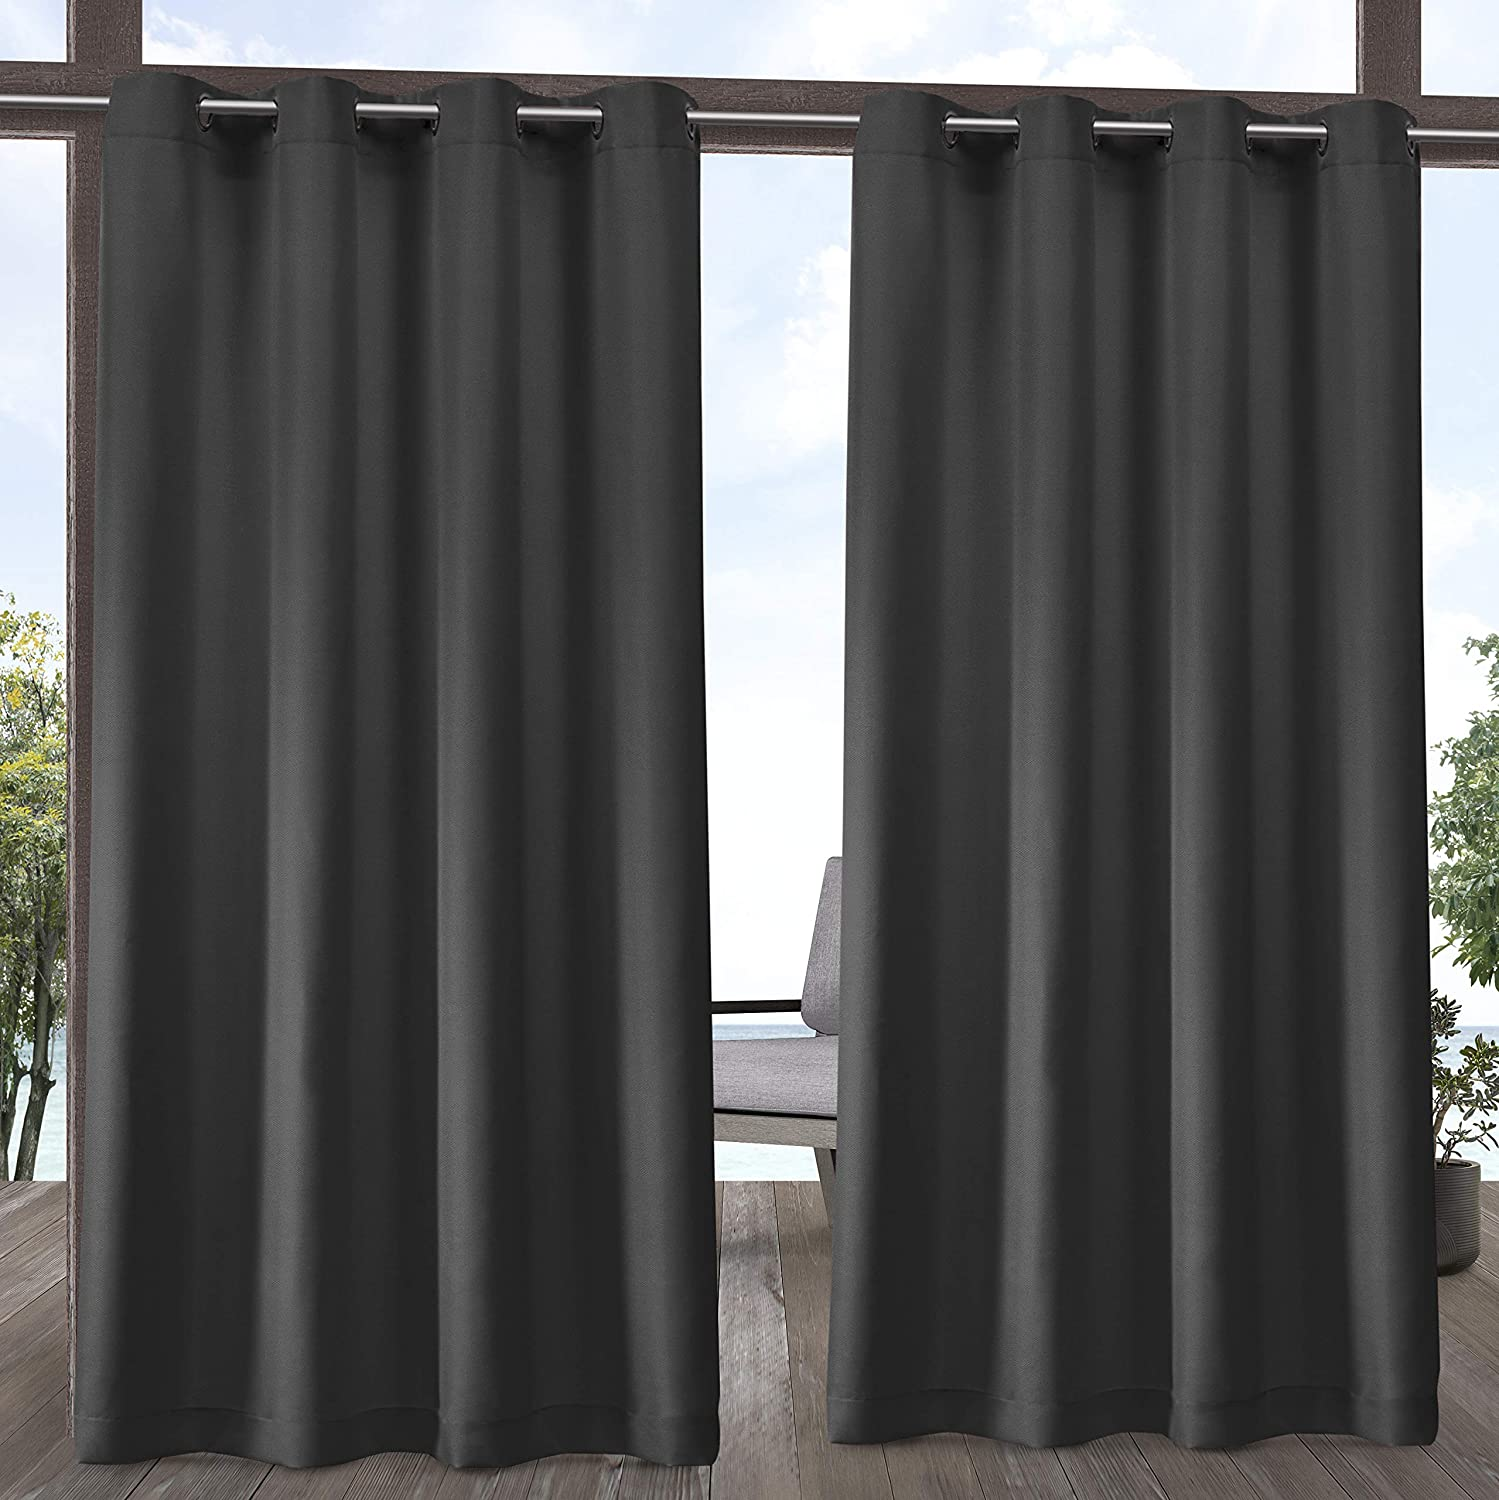 Exclusive Home Curtains Indoor/Outdoor Solid Cabana Grommet Top Curtain Panel Pair, 54x84, Charcoal